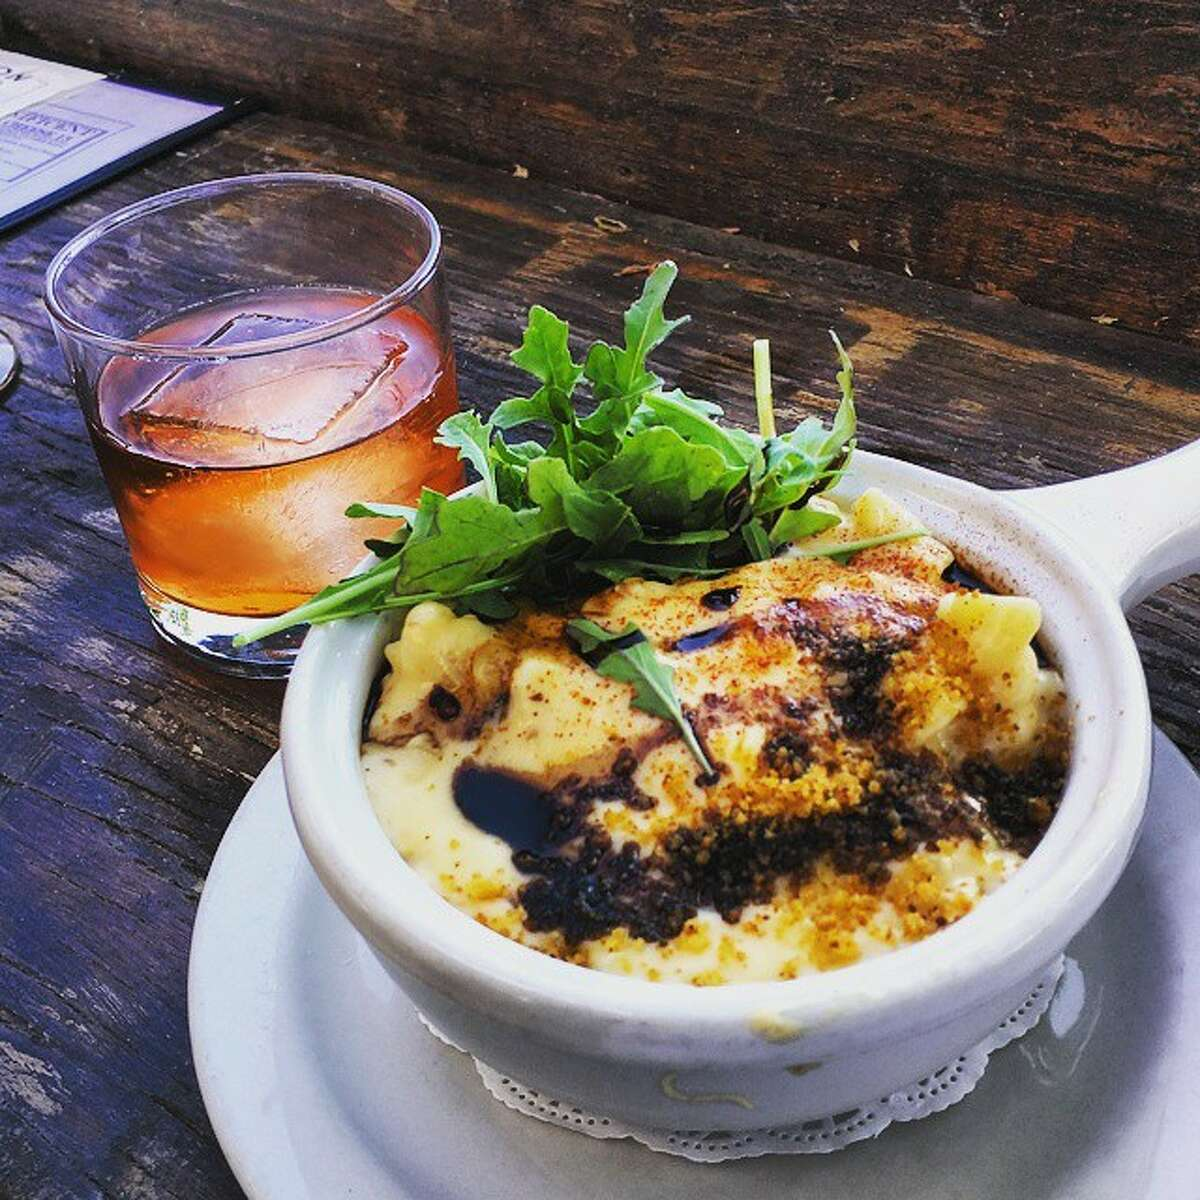 The Sexton, Ballard: The Sexton's mac and cheese occupies its own corner of the menu, offering you a choice of The Sexton Mac (pictured, with a bacon roux, five-cheese blend and balsamic reduction), pesto mac, chorizo mac, butternut squash mac and green chili mac. How on Earth do you choose?